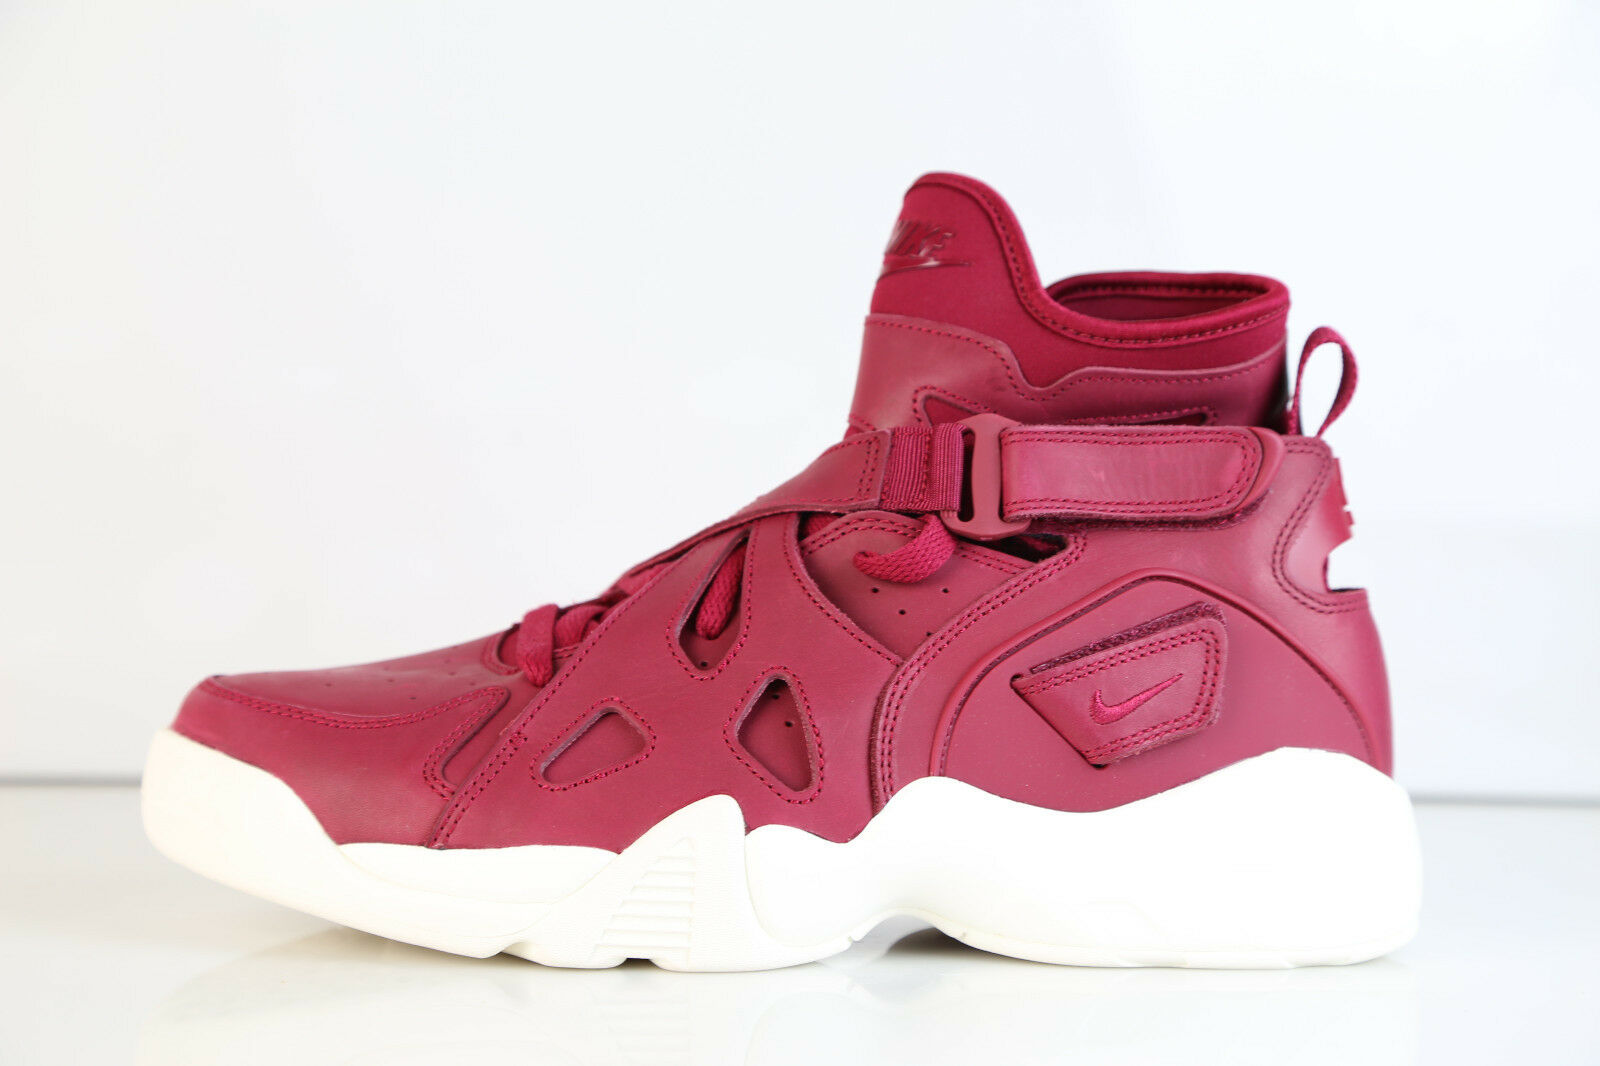 Nike Air Unlimited Noble Red Sail 854318-661 8-12 zoom 9 11 huarache